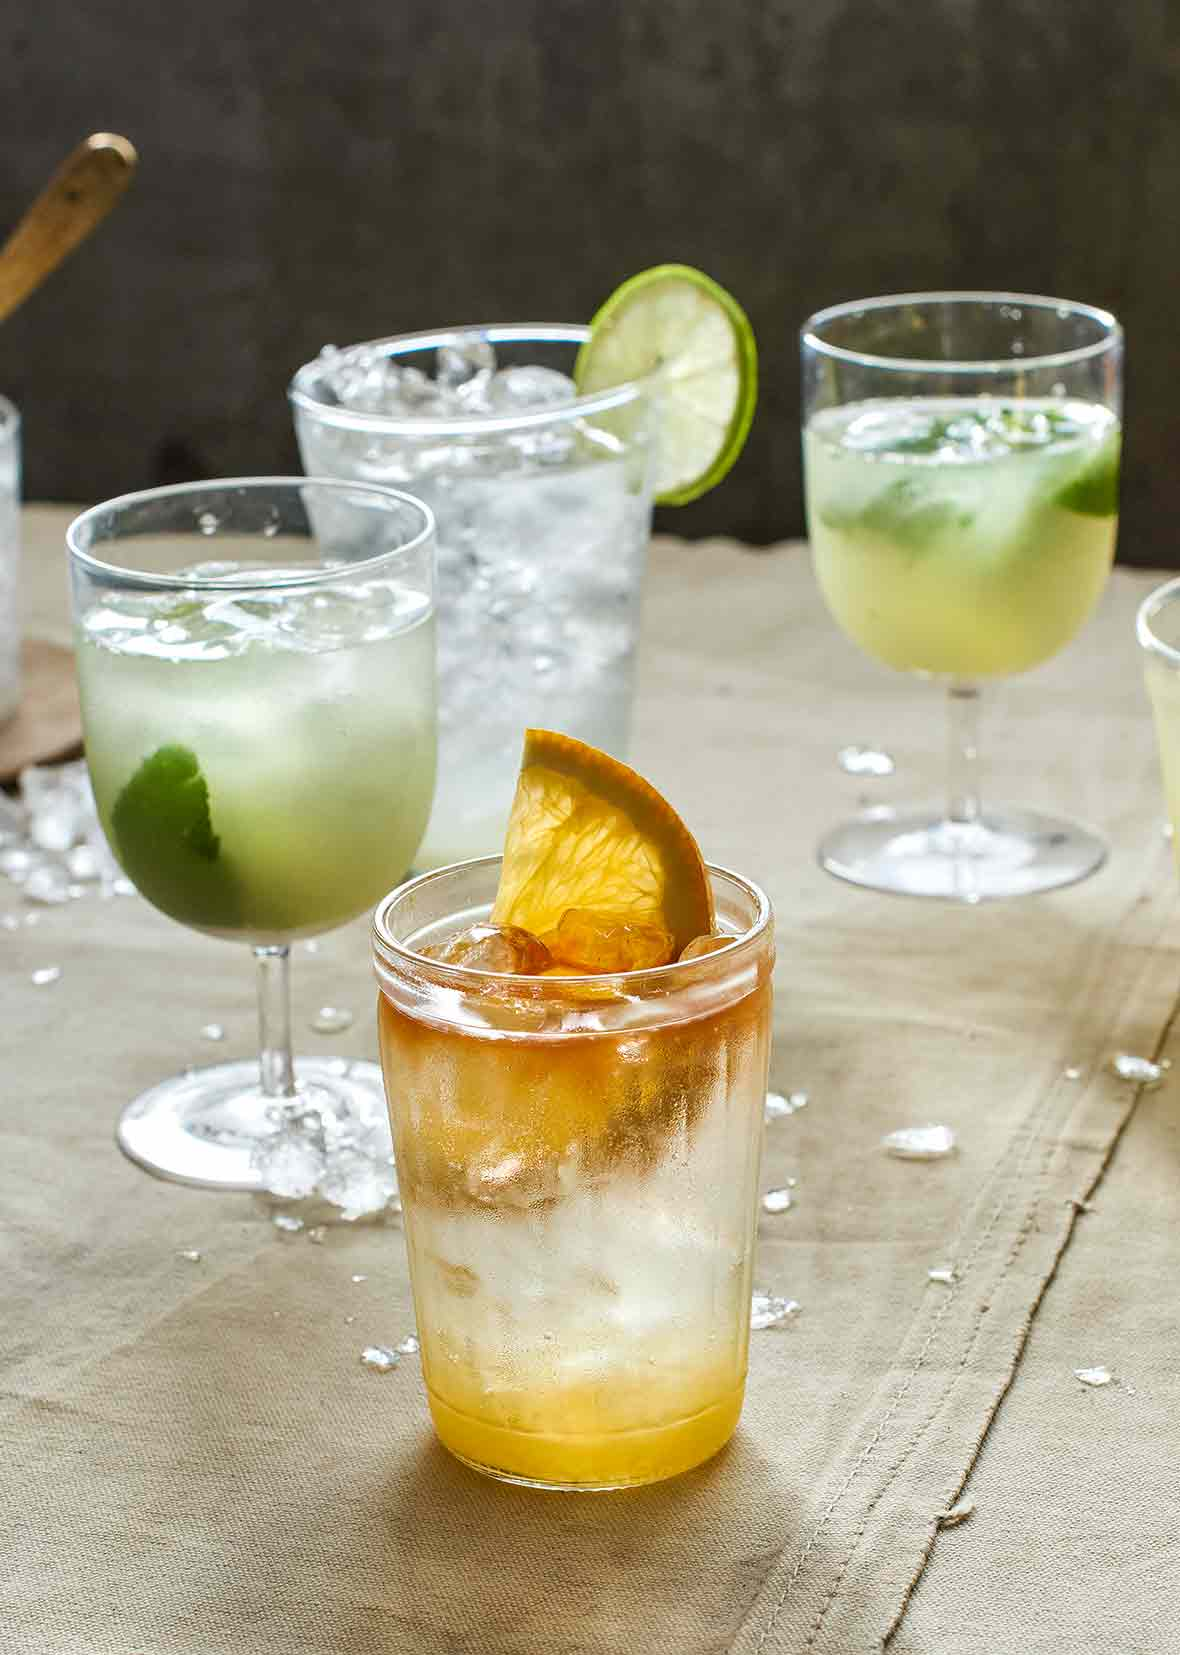 Two glasses of lime soda and one glass of angostura orange.